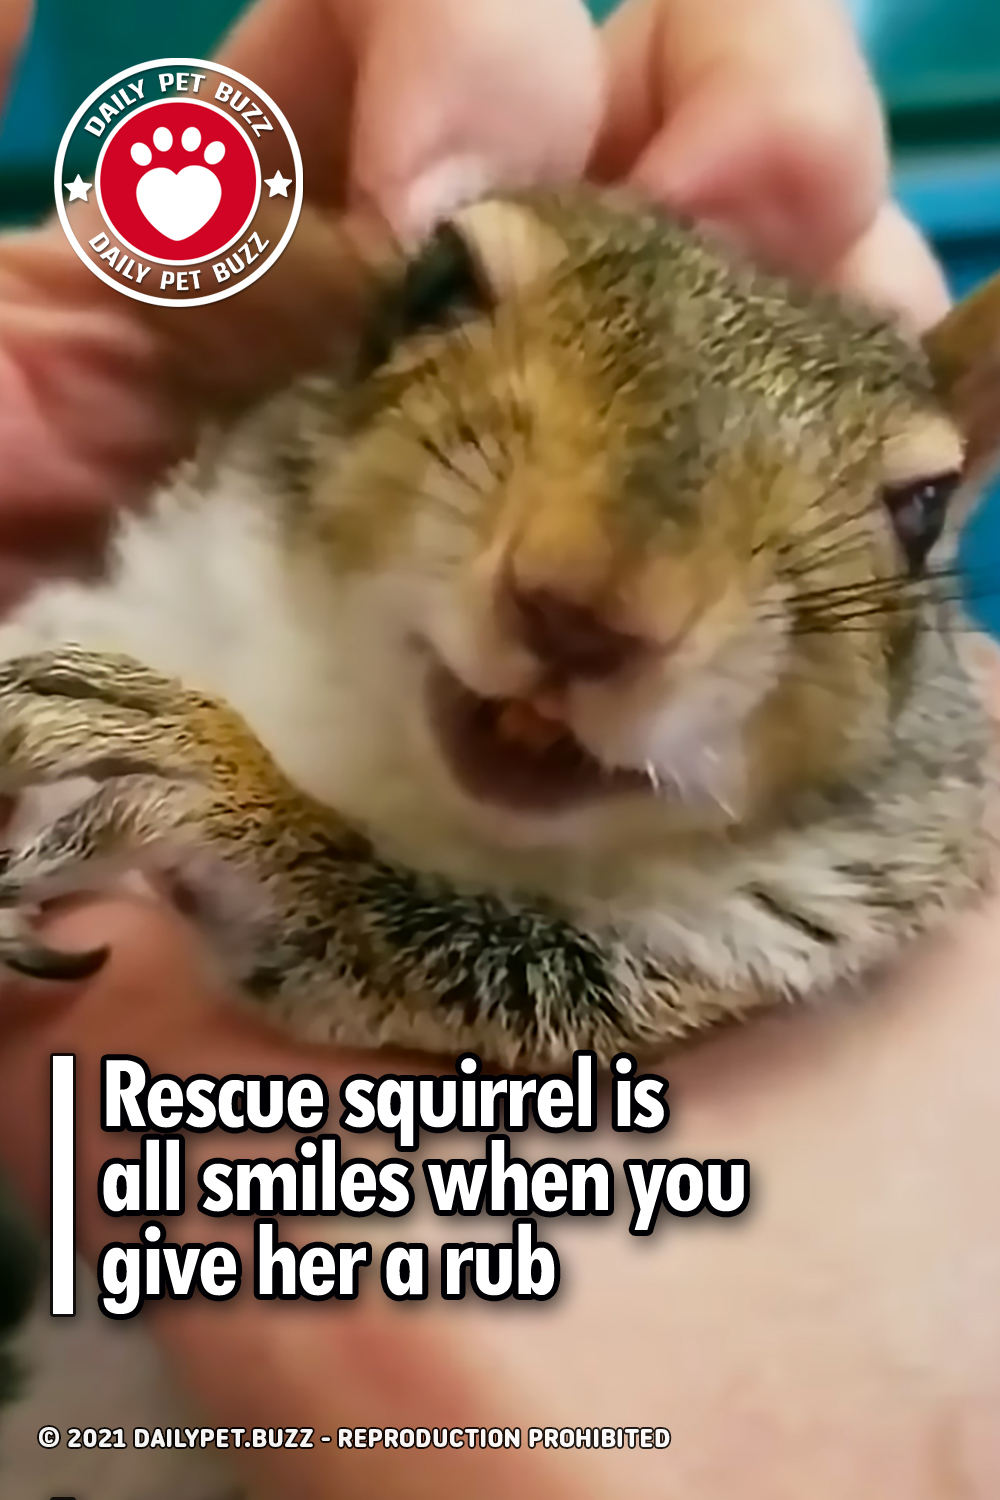 Rescue squirrel is all smiles when you give her a rub